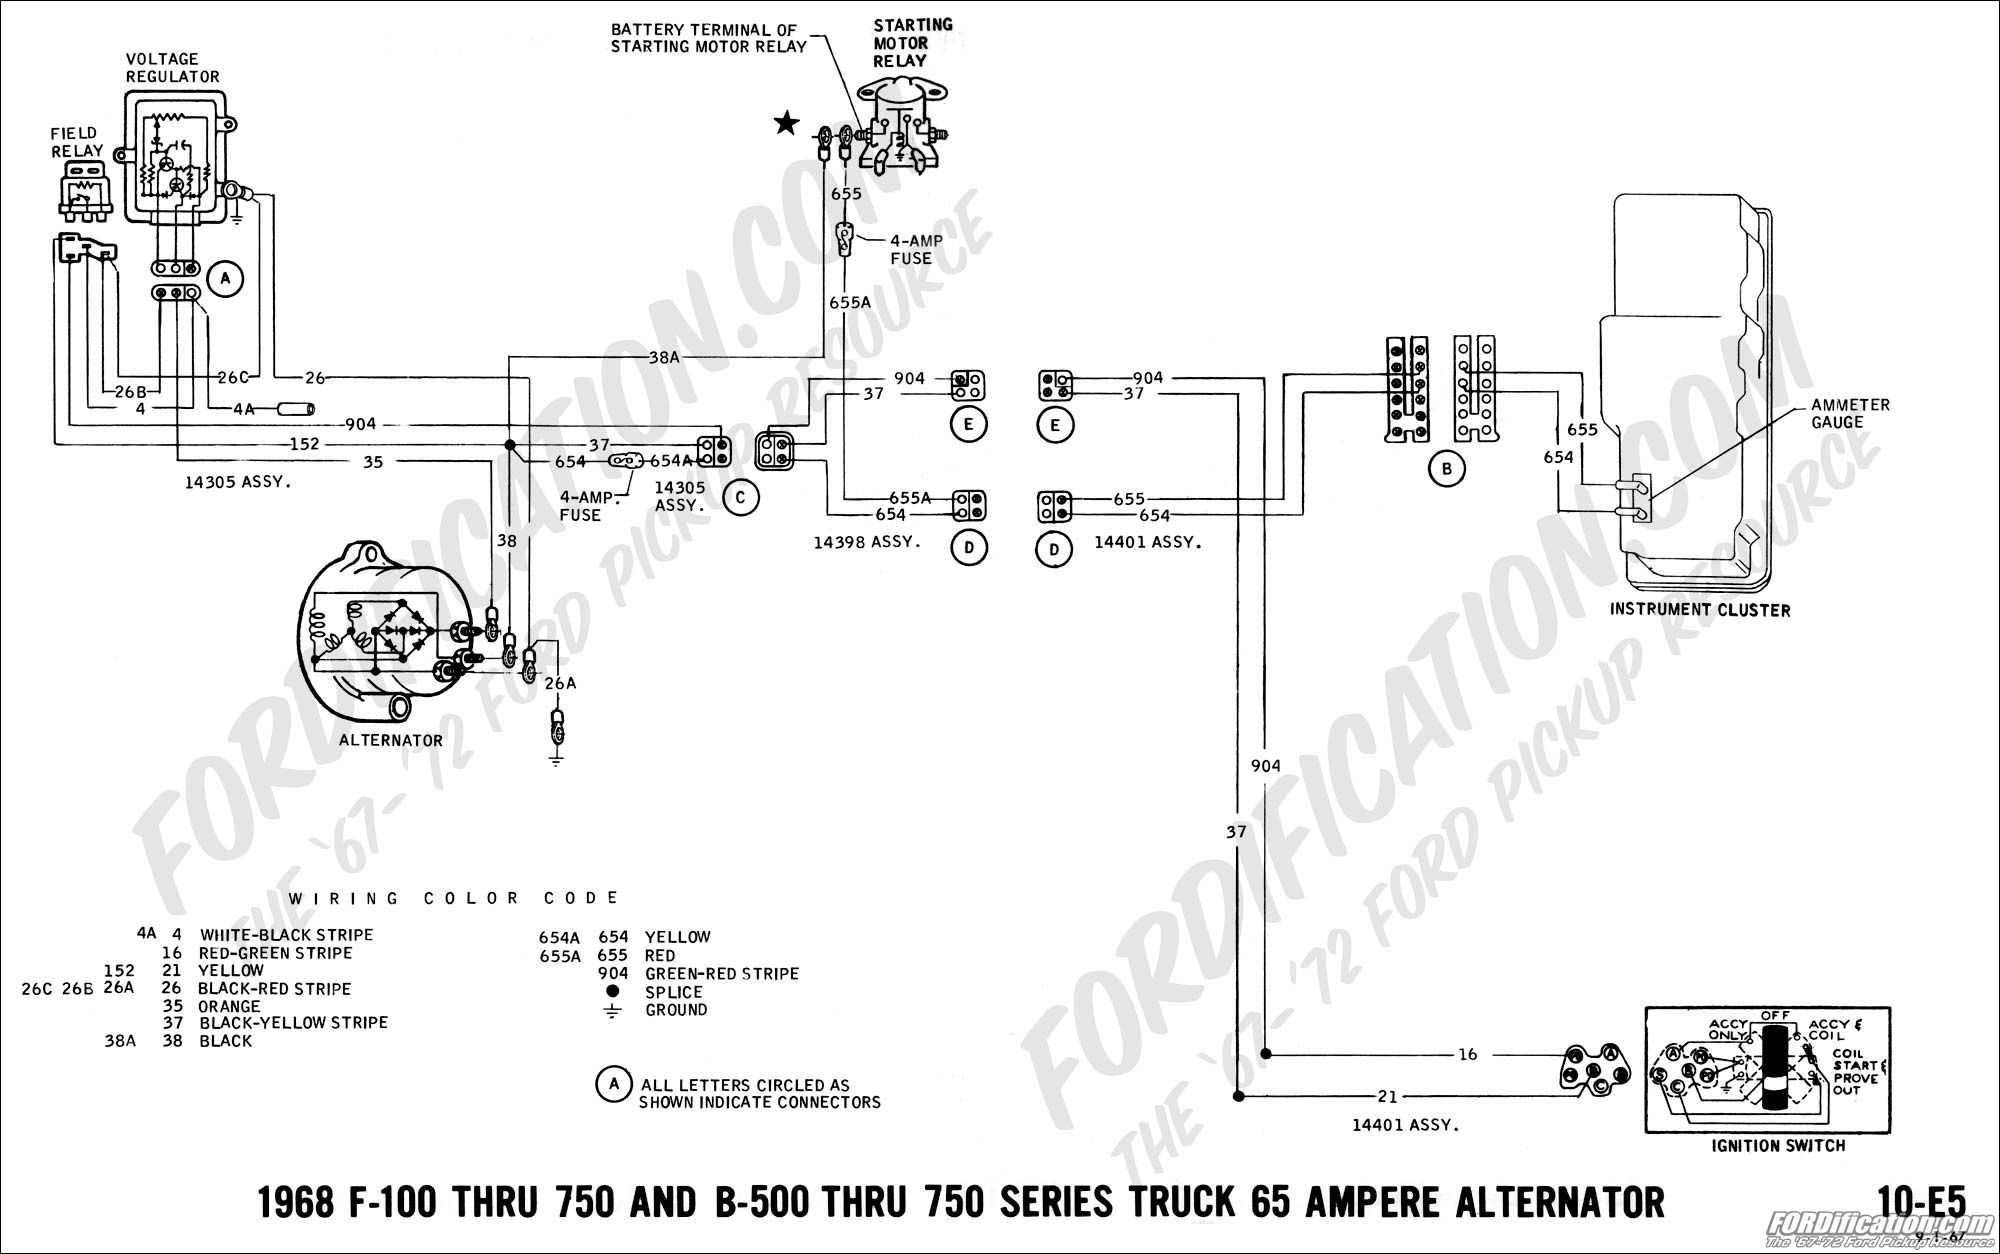 Ford V10 Alternator Wiring Diagram Worksheet And 2007 F250 Transmission 1983 Truck Data U2022 Rh Nflzone Co 2016 68 Engine Diagrams